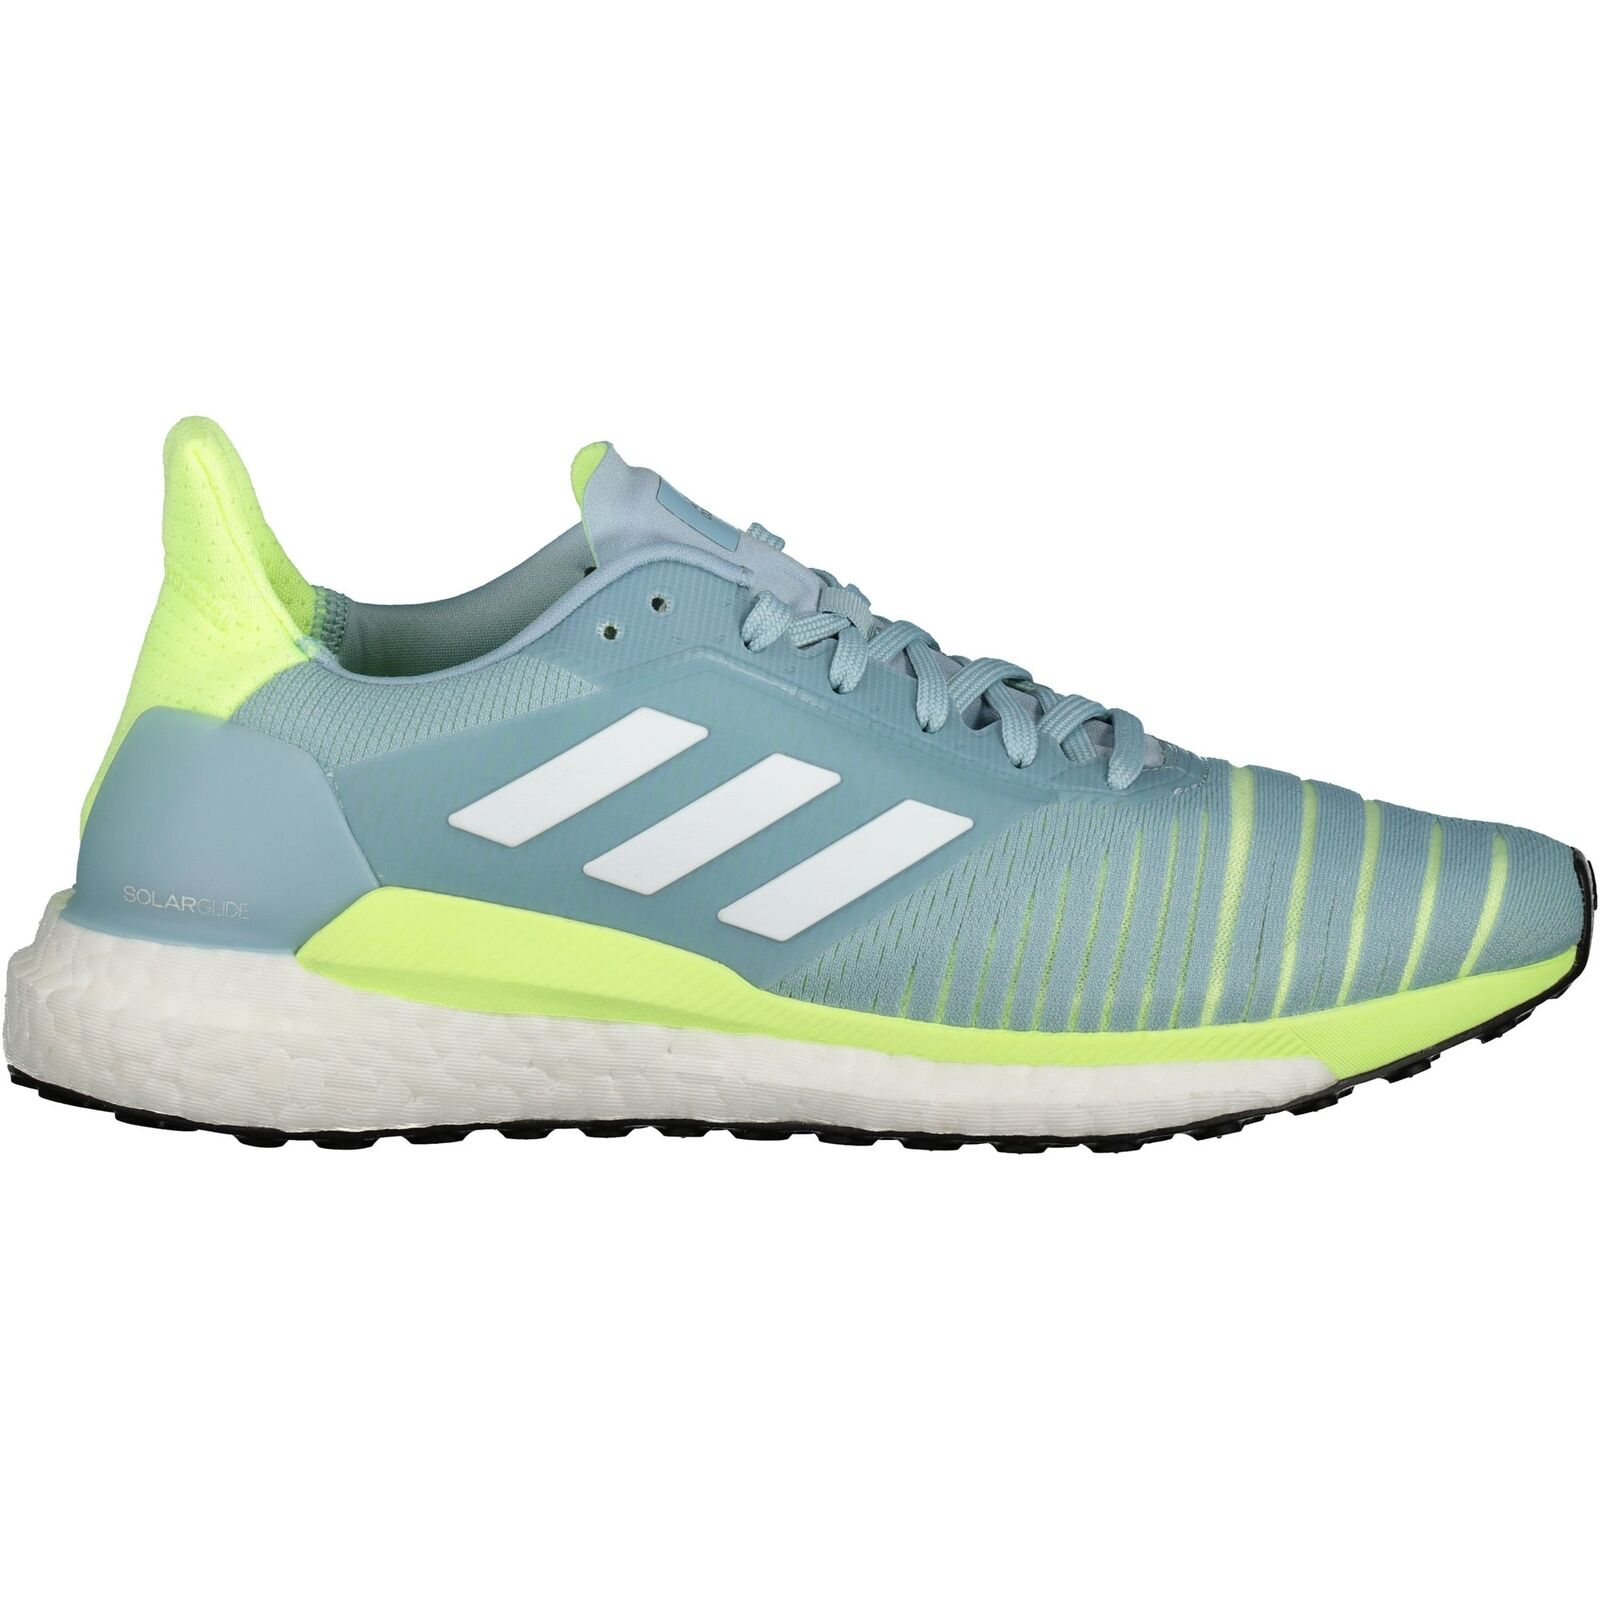 Adidas Performance Solar Glide W Running shoes Womens Running shoes